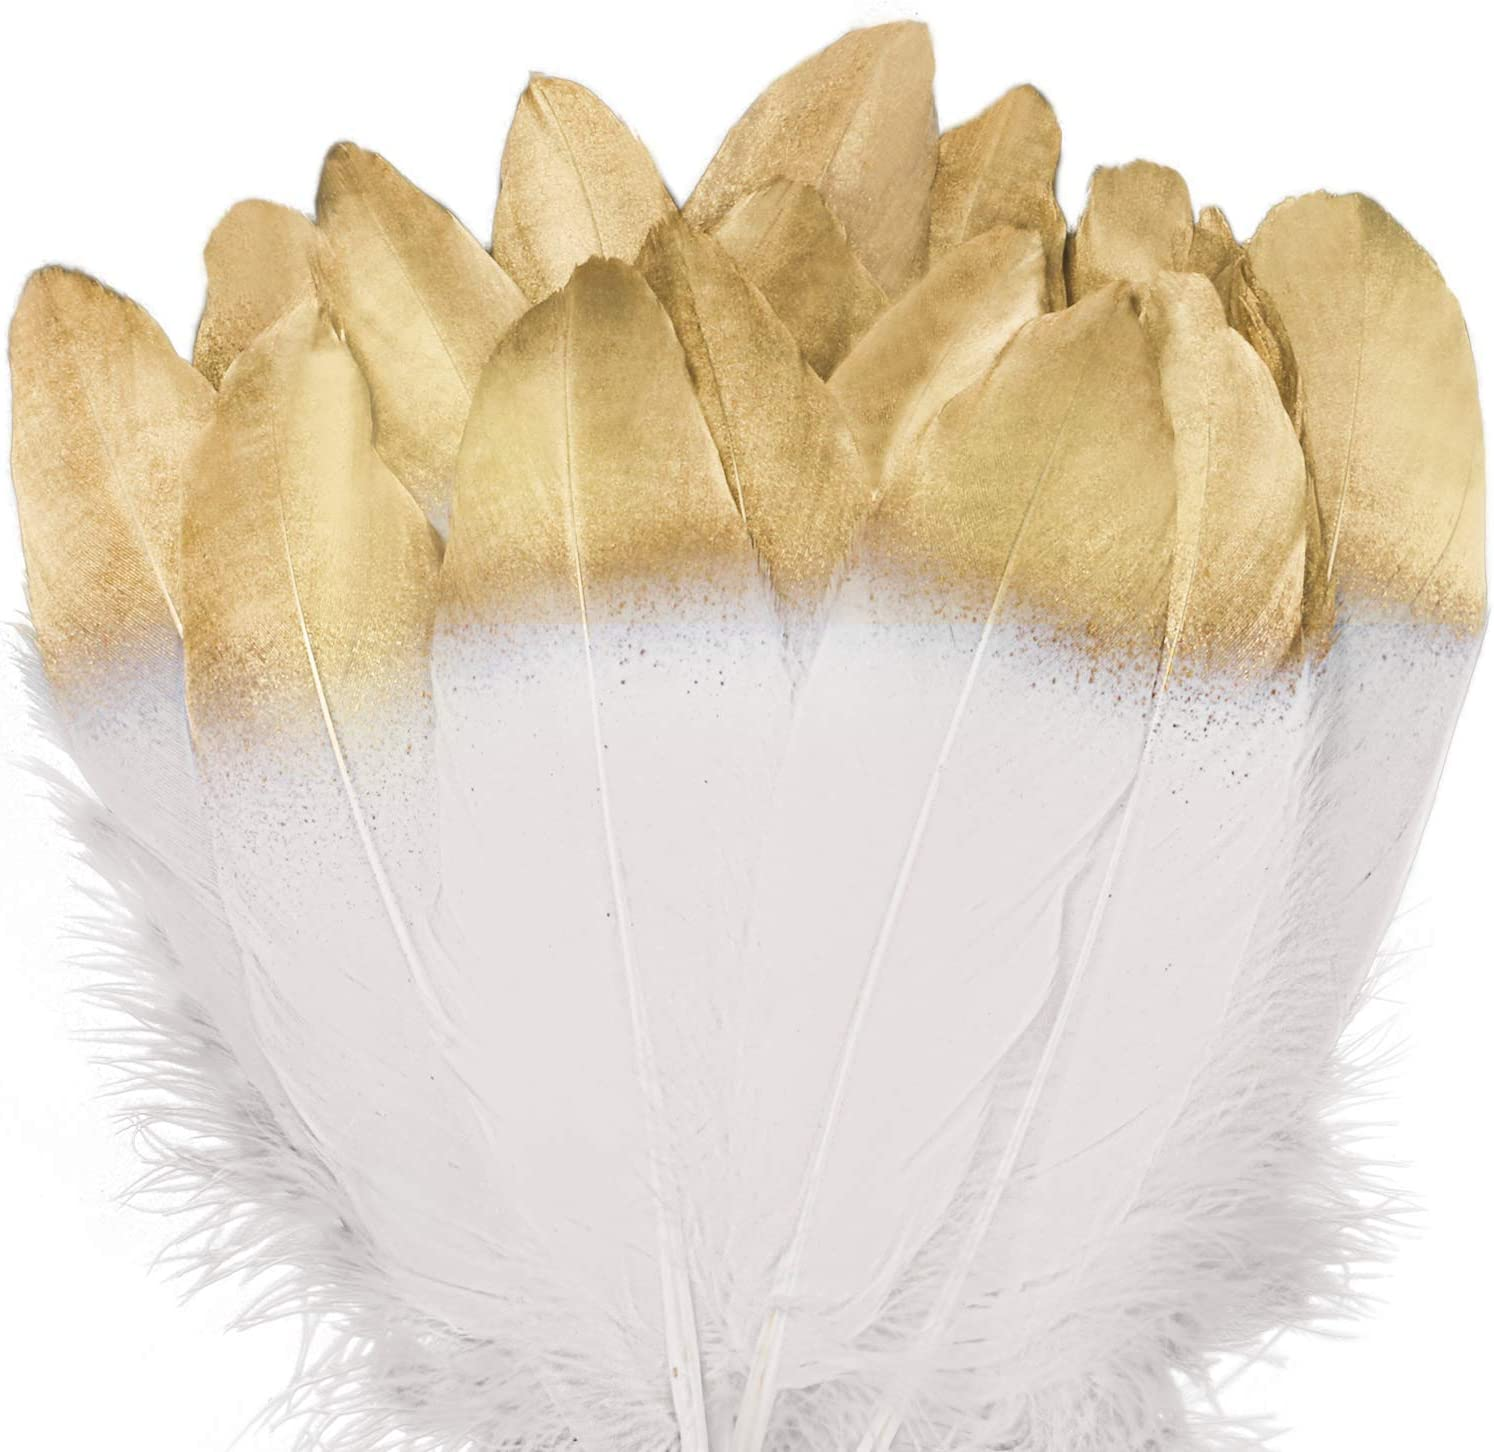 UNEEDE 42 Pcs Gold Dipped White Glitter Feather Goose Real Feather Natural Craft Art Soft Native Feather Accessories for Easter Decor,Christmas, DIY, Party, Valentines Day Decor,Wedding, Dream Catcher